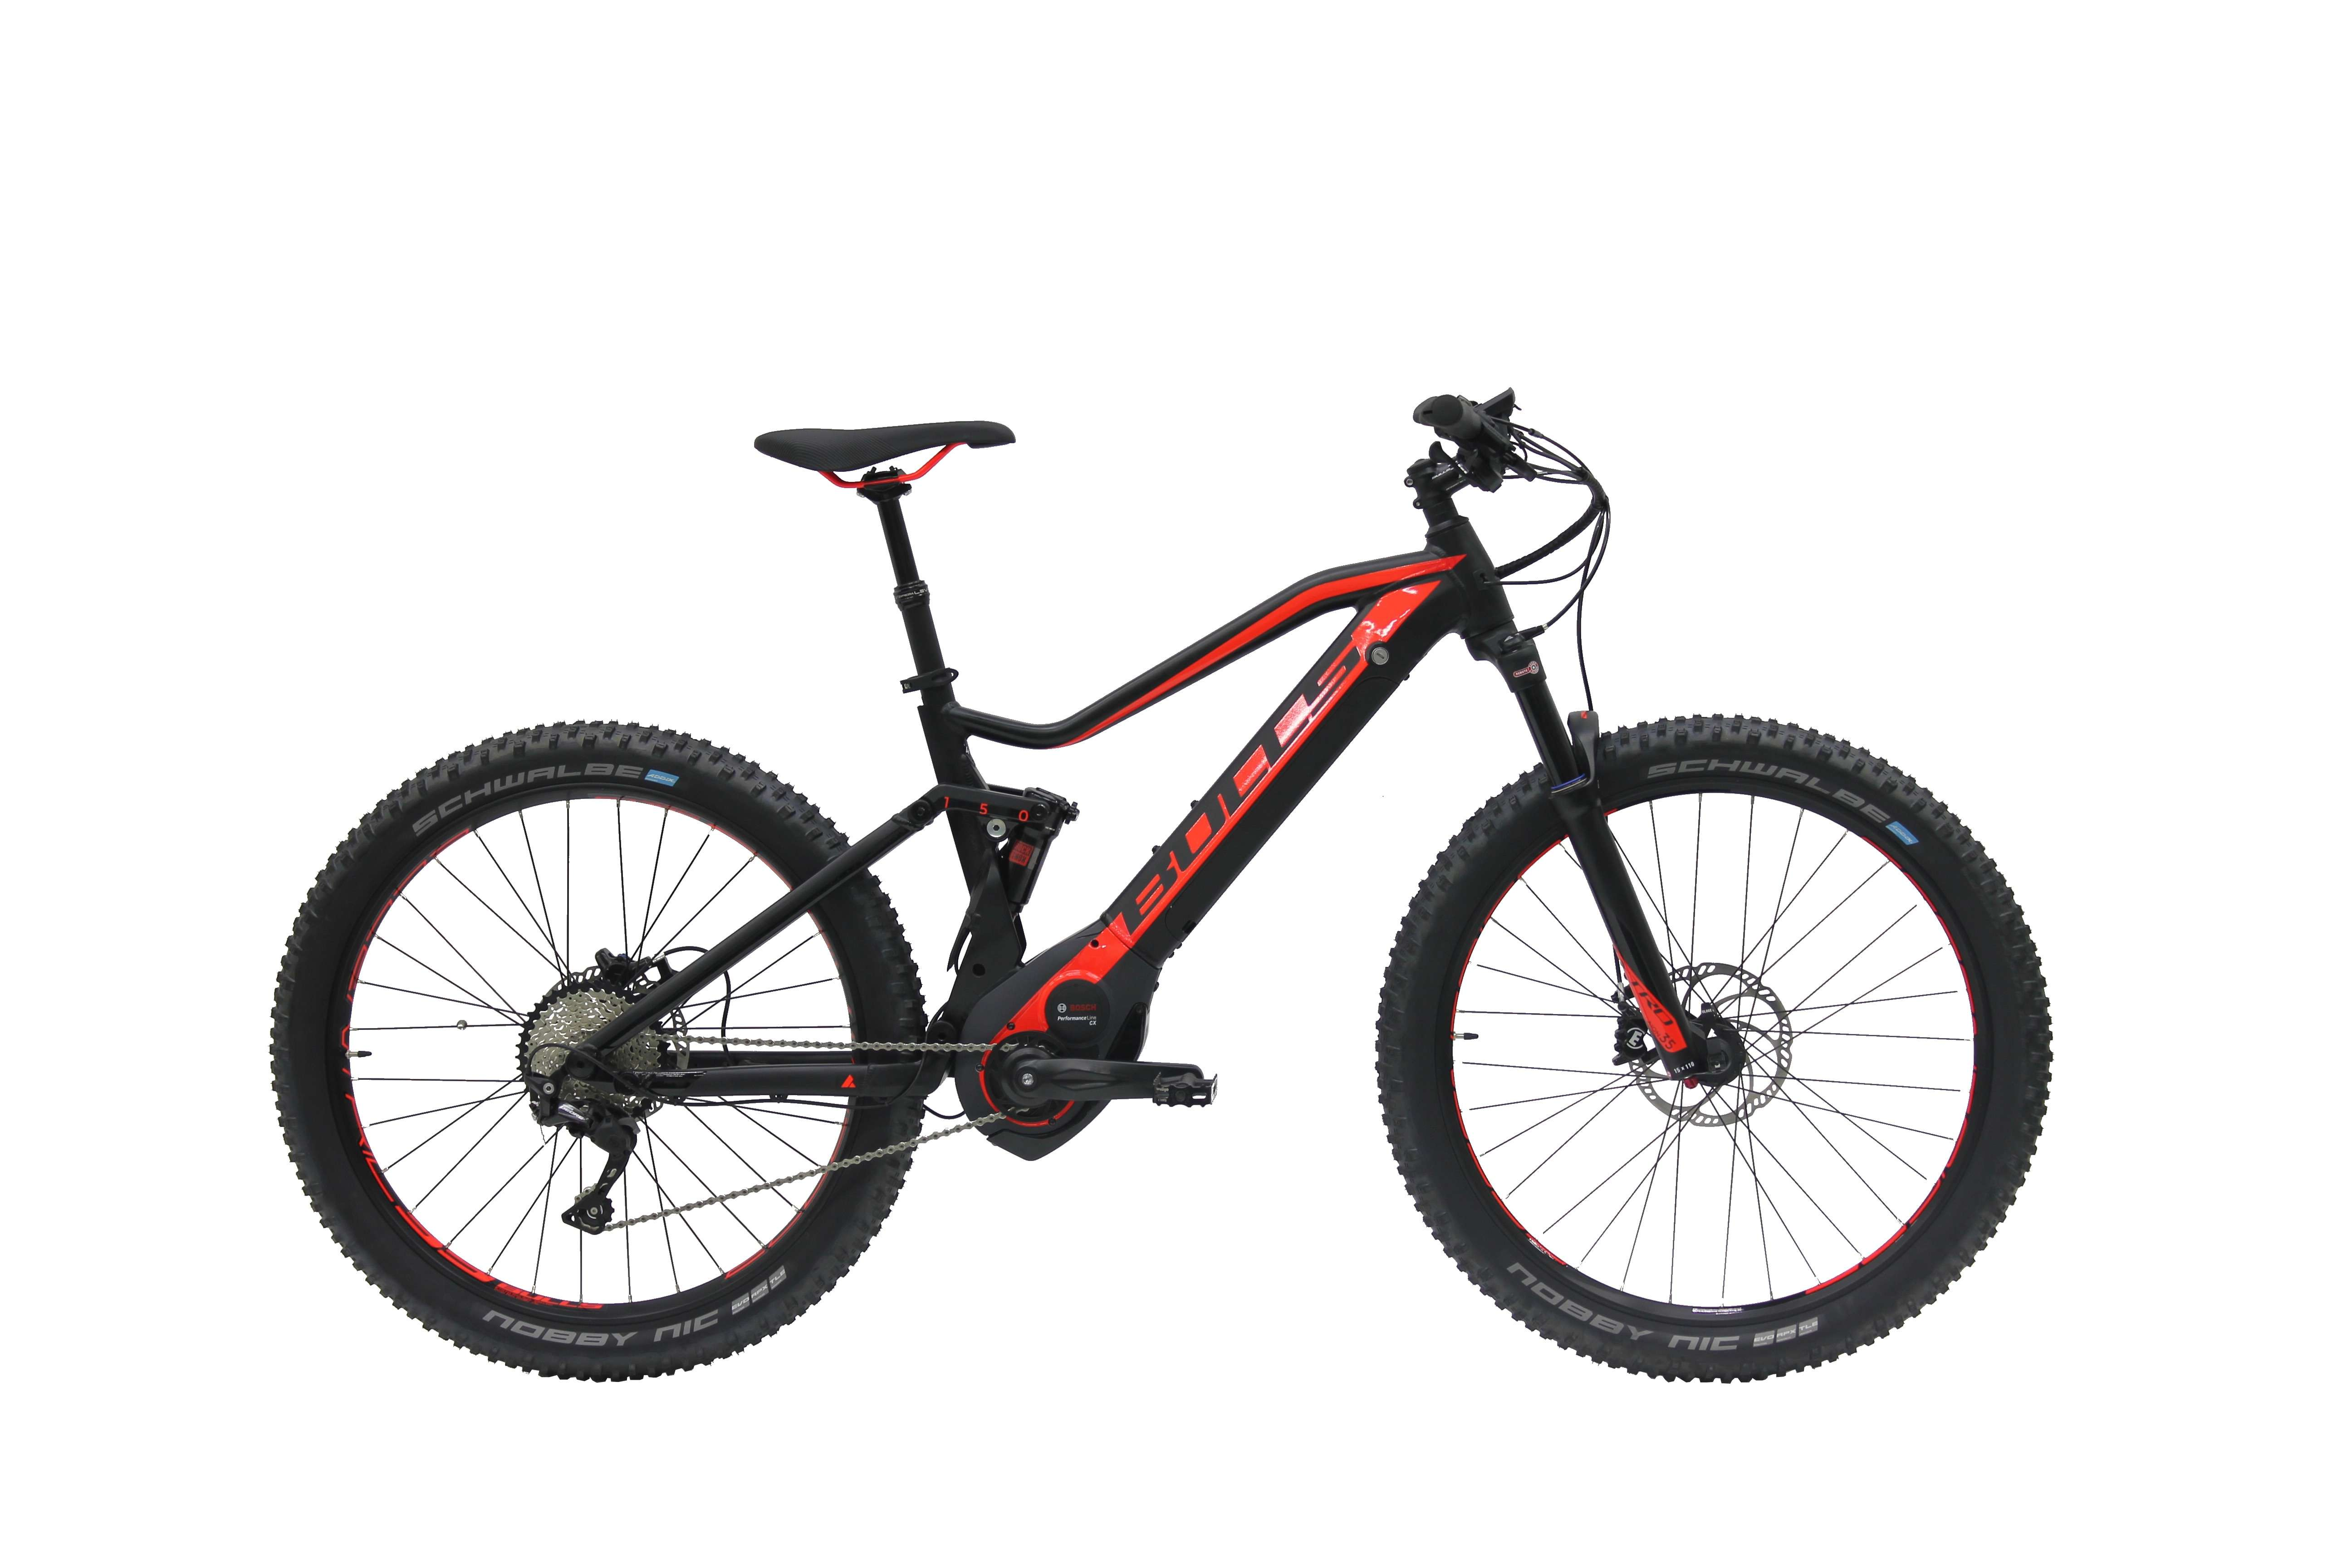 Bulls Siz50 electric bike arizona dealers